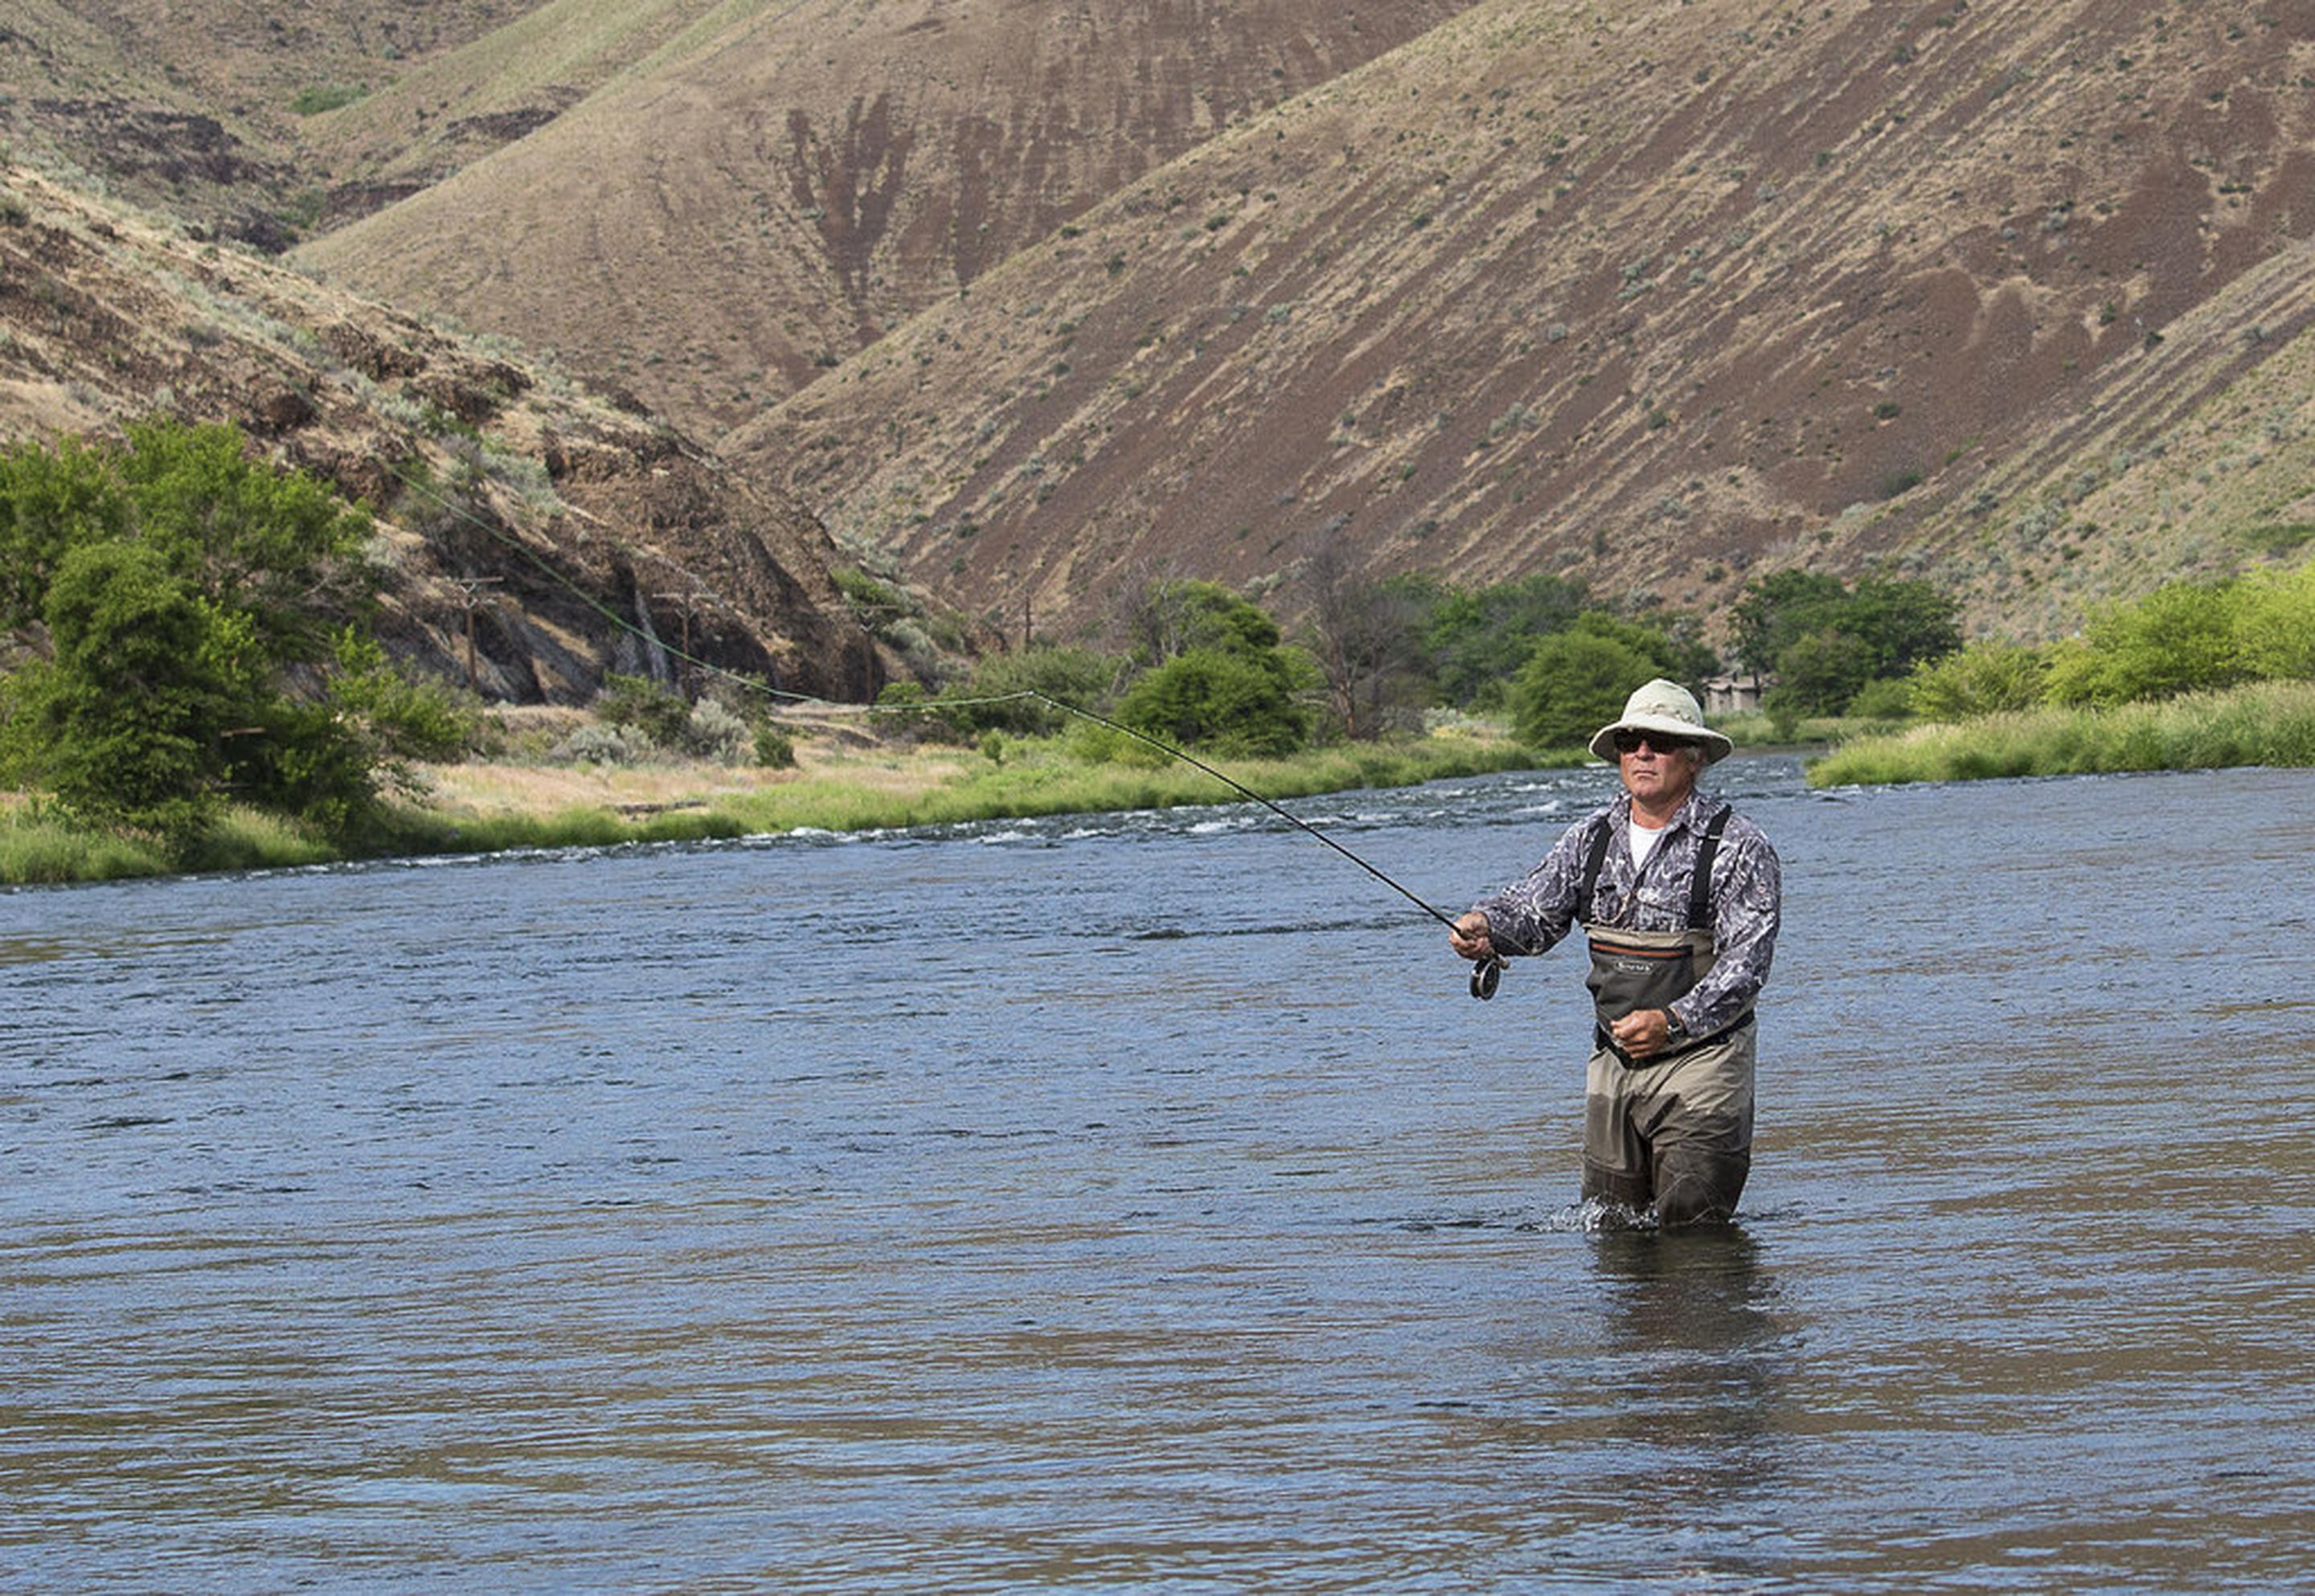 A fly fisherman tries his luck on the Deschutes river.A fly fisherman tries his luck on the Deschutes river.